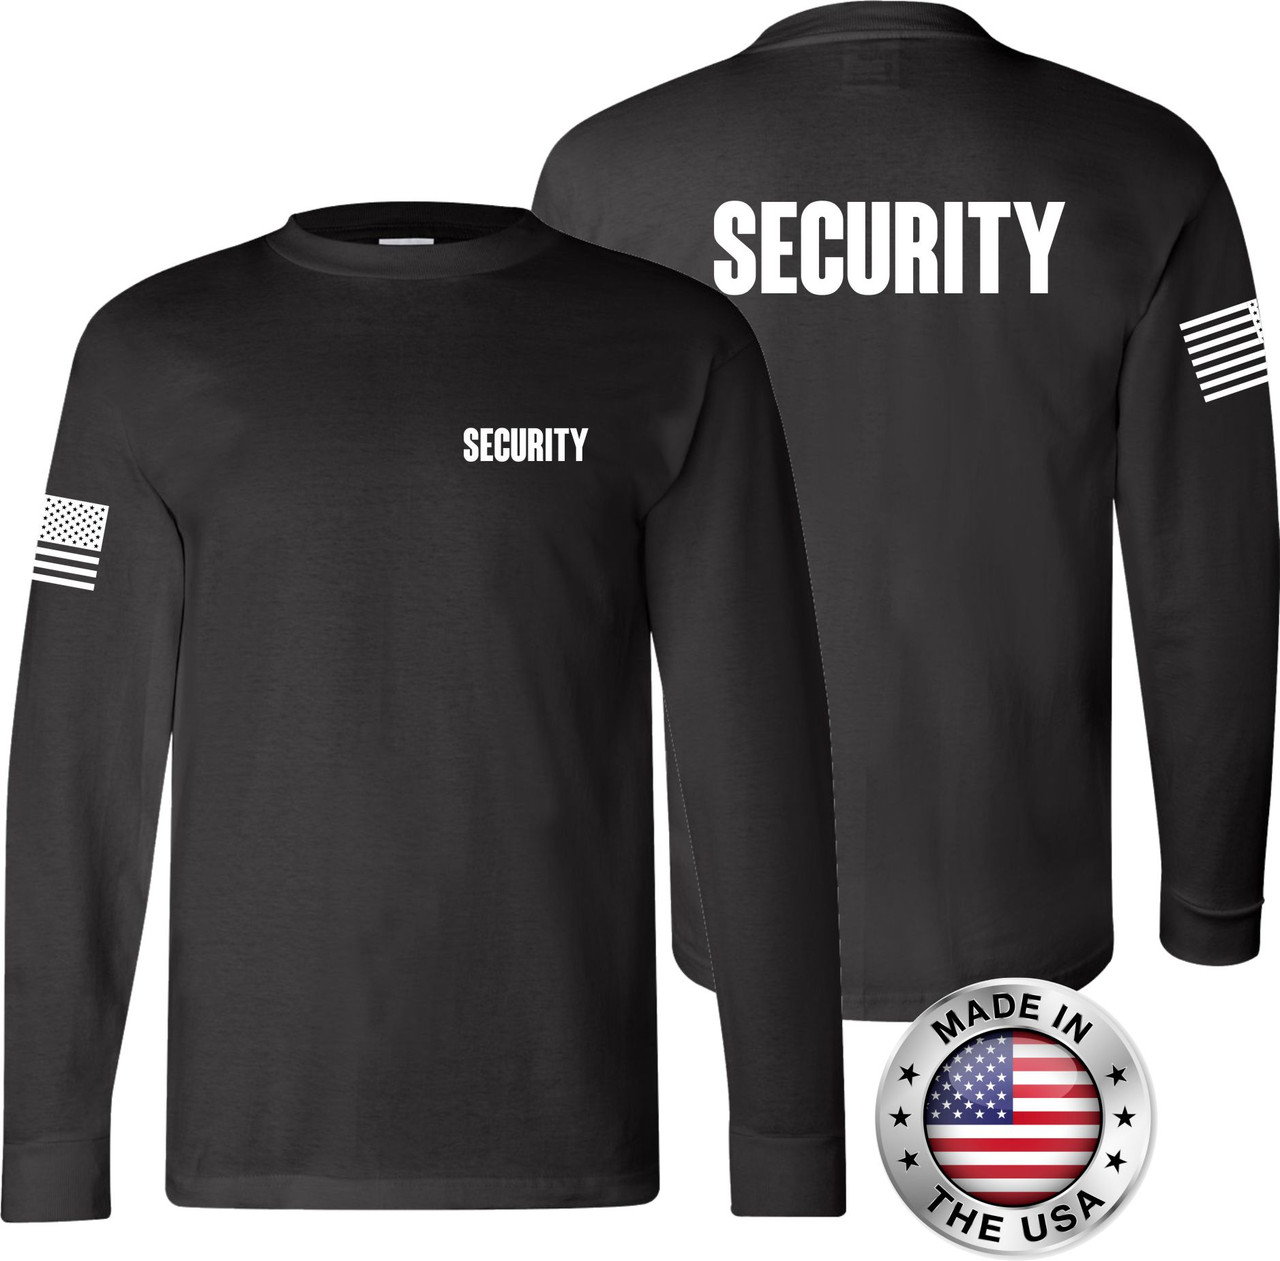 Black Long Sleeve Security T Shirt made in the USA.